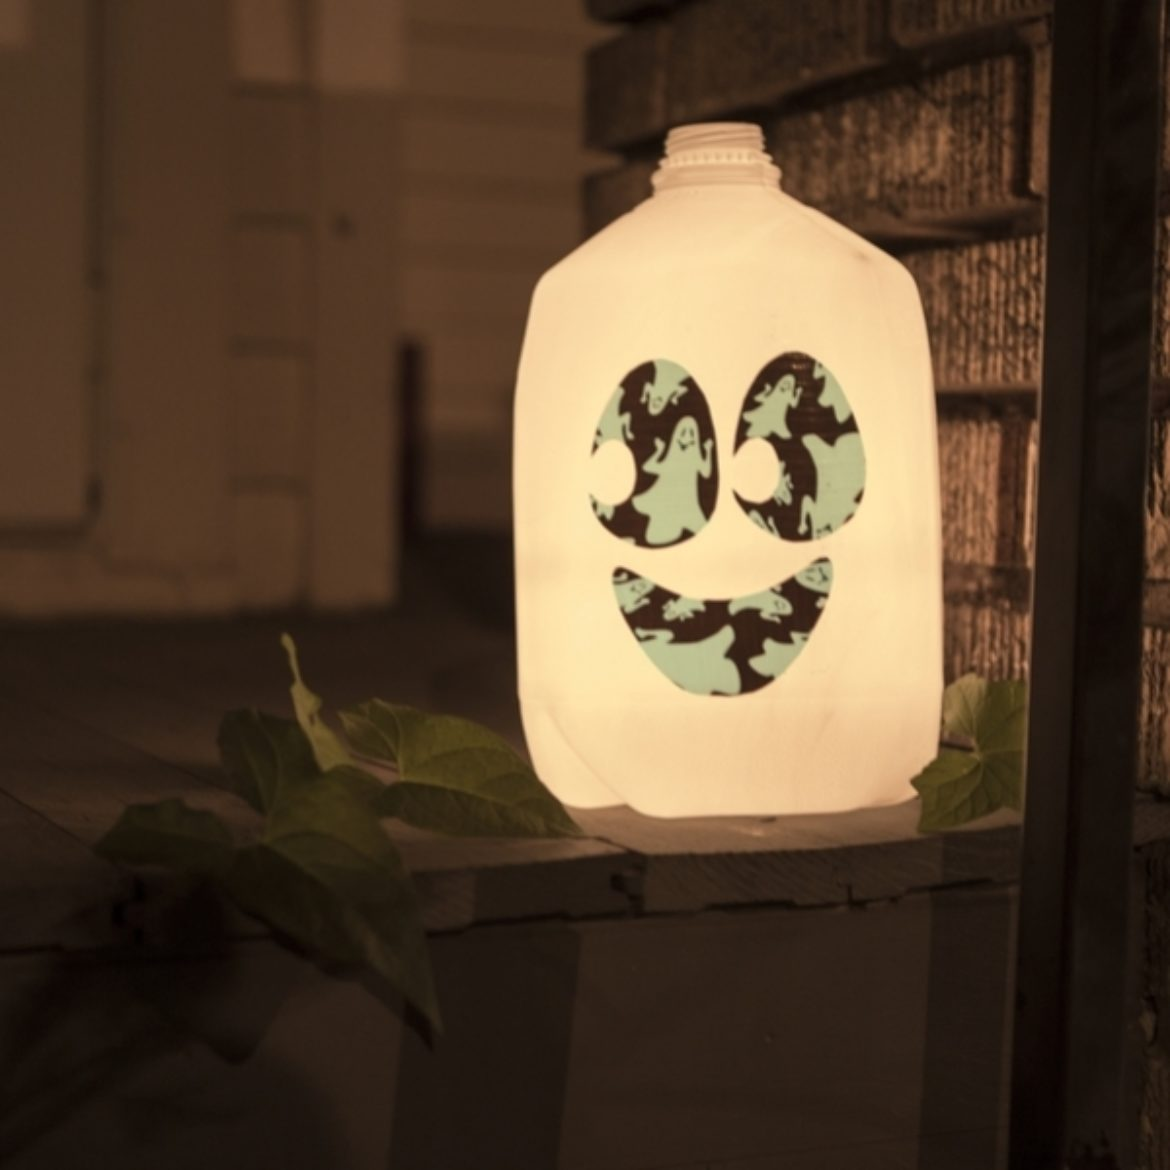 Completed Glow-in-the-Dark Duck Tape®Milk Jug Lantern with a small led light placed inside